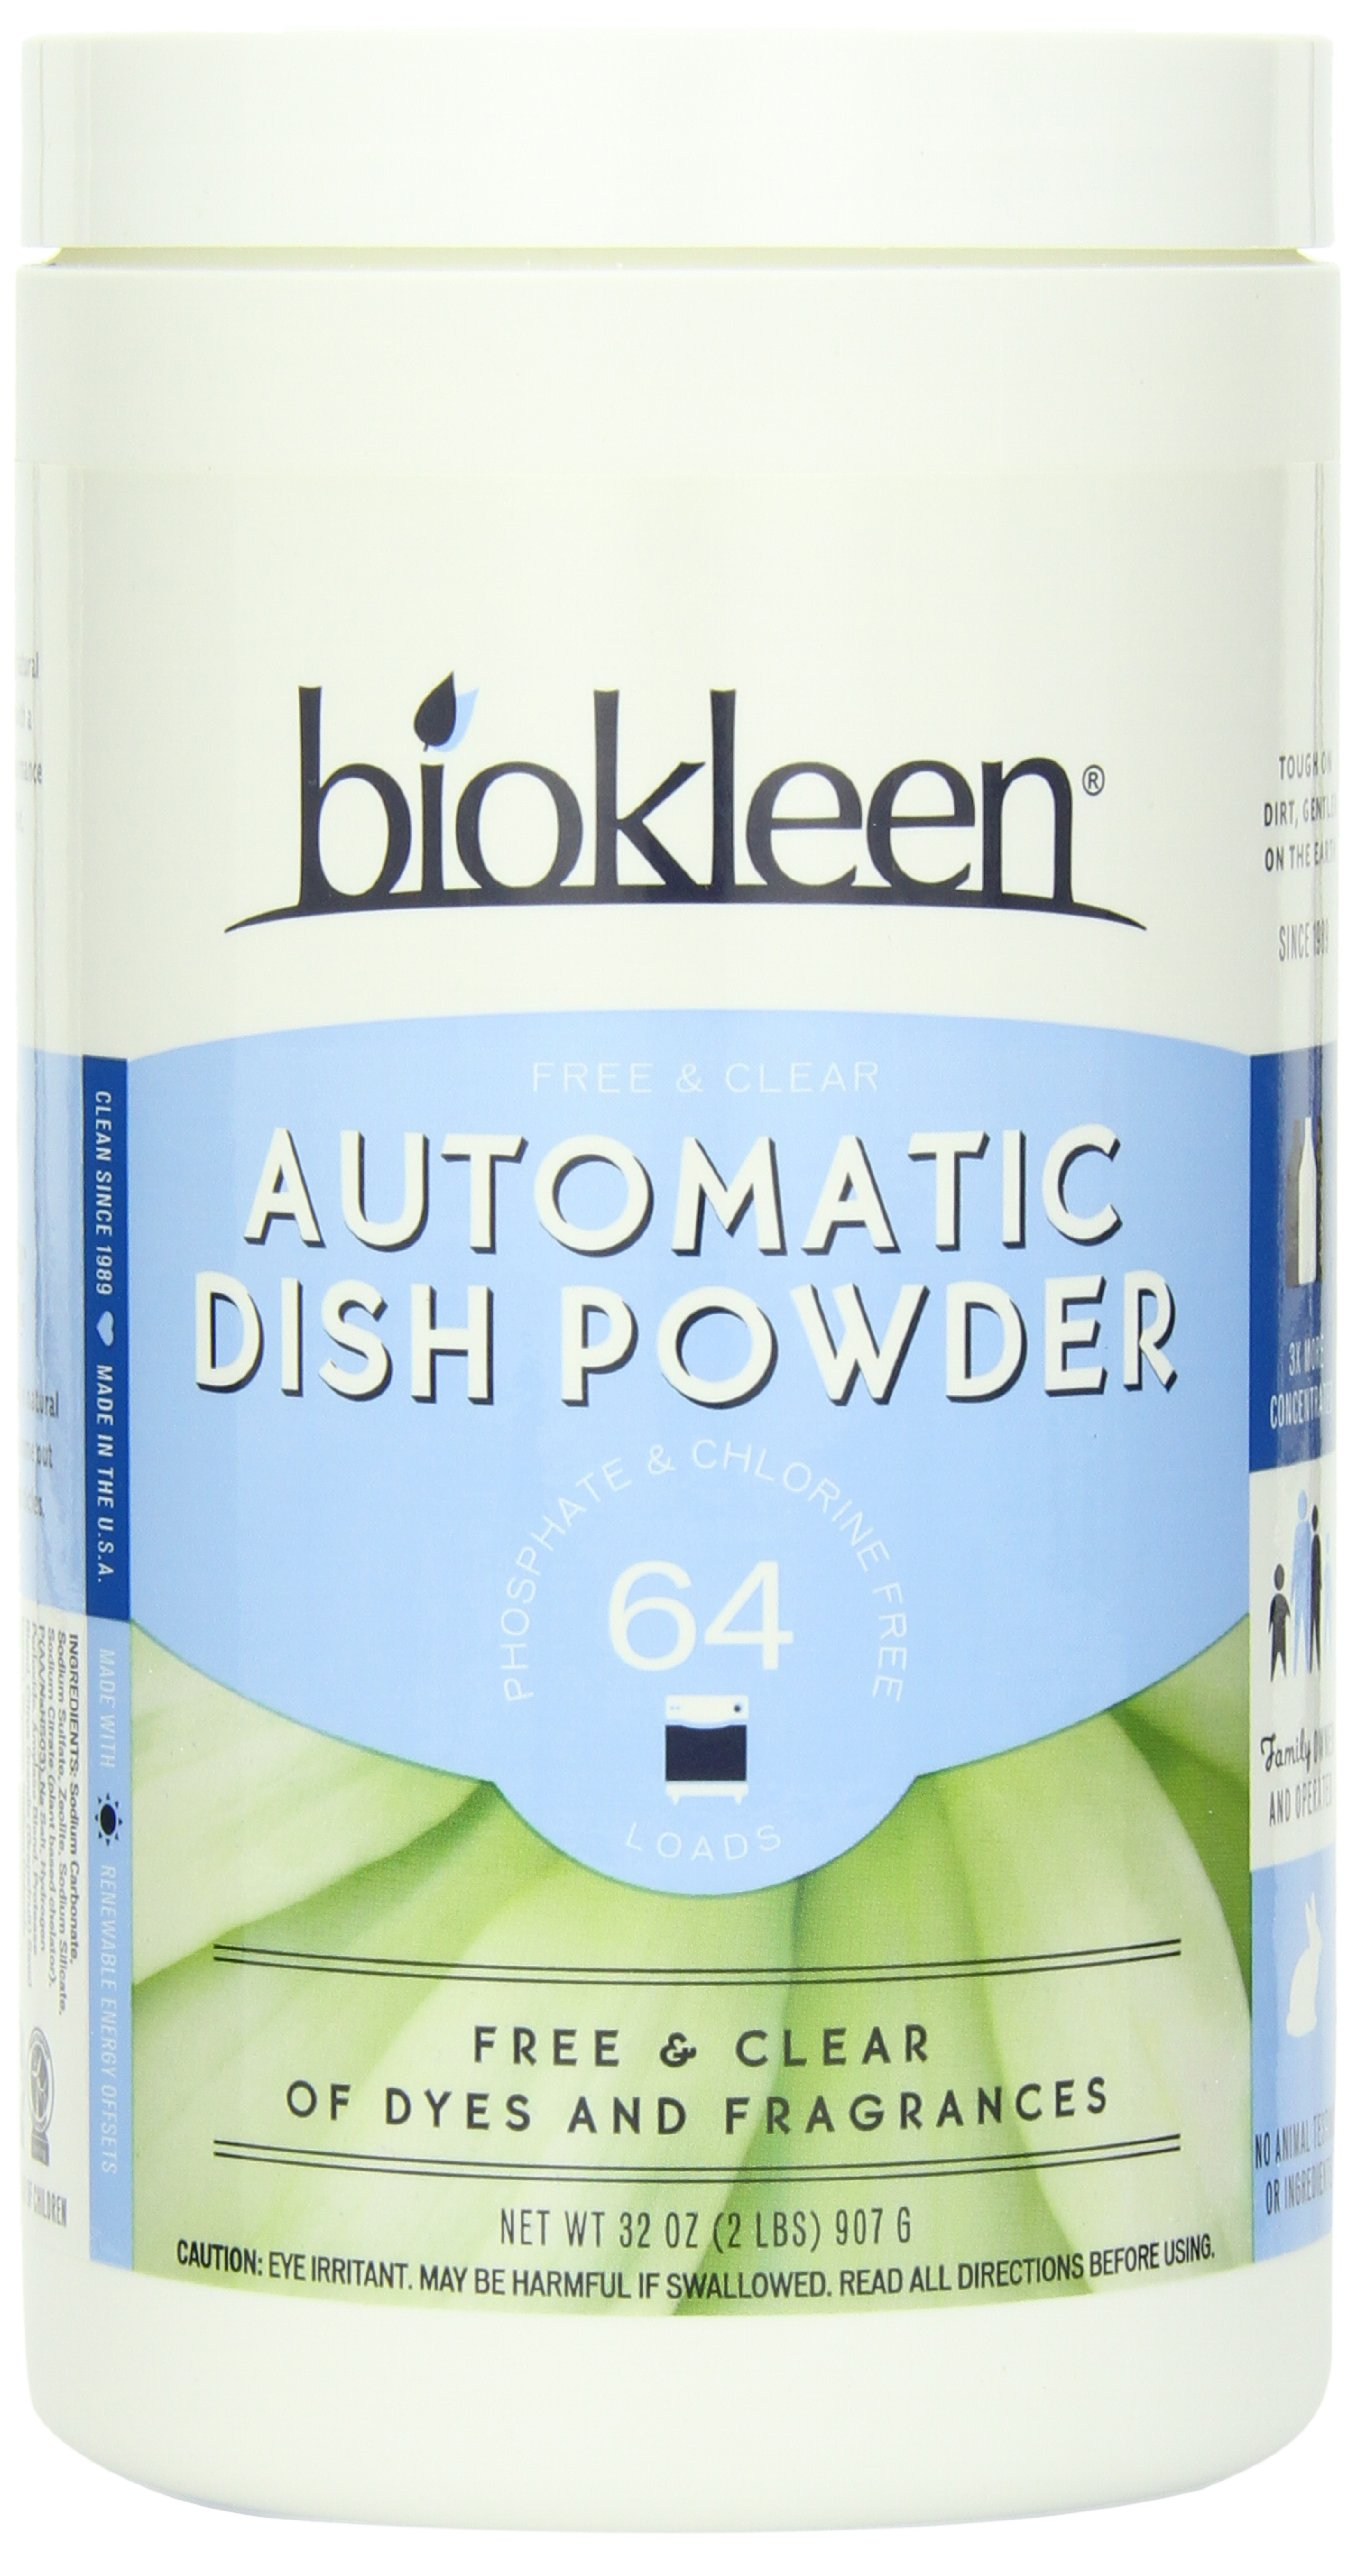 Biokleen Automatic Dish Powder, Free & Clear, 2 Pounds (Pack of 12)